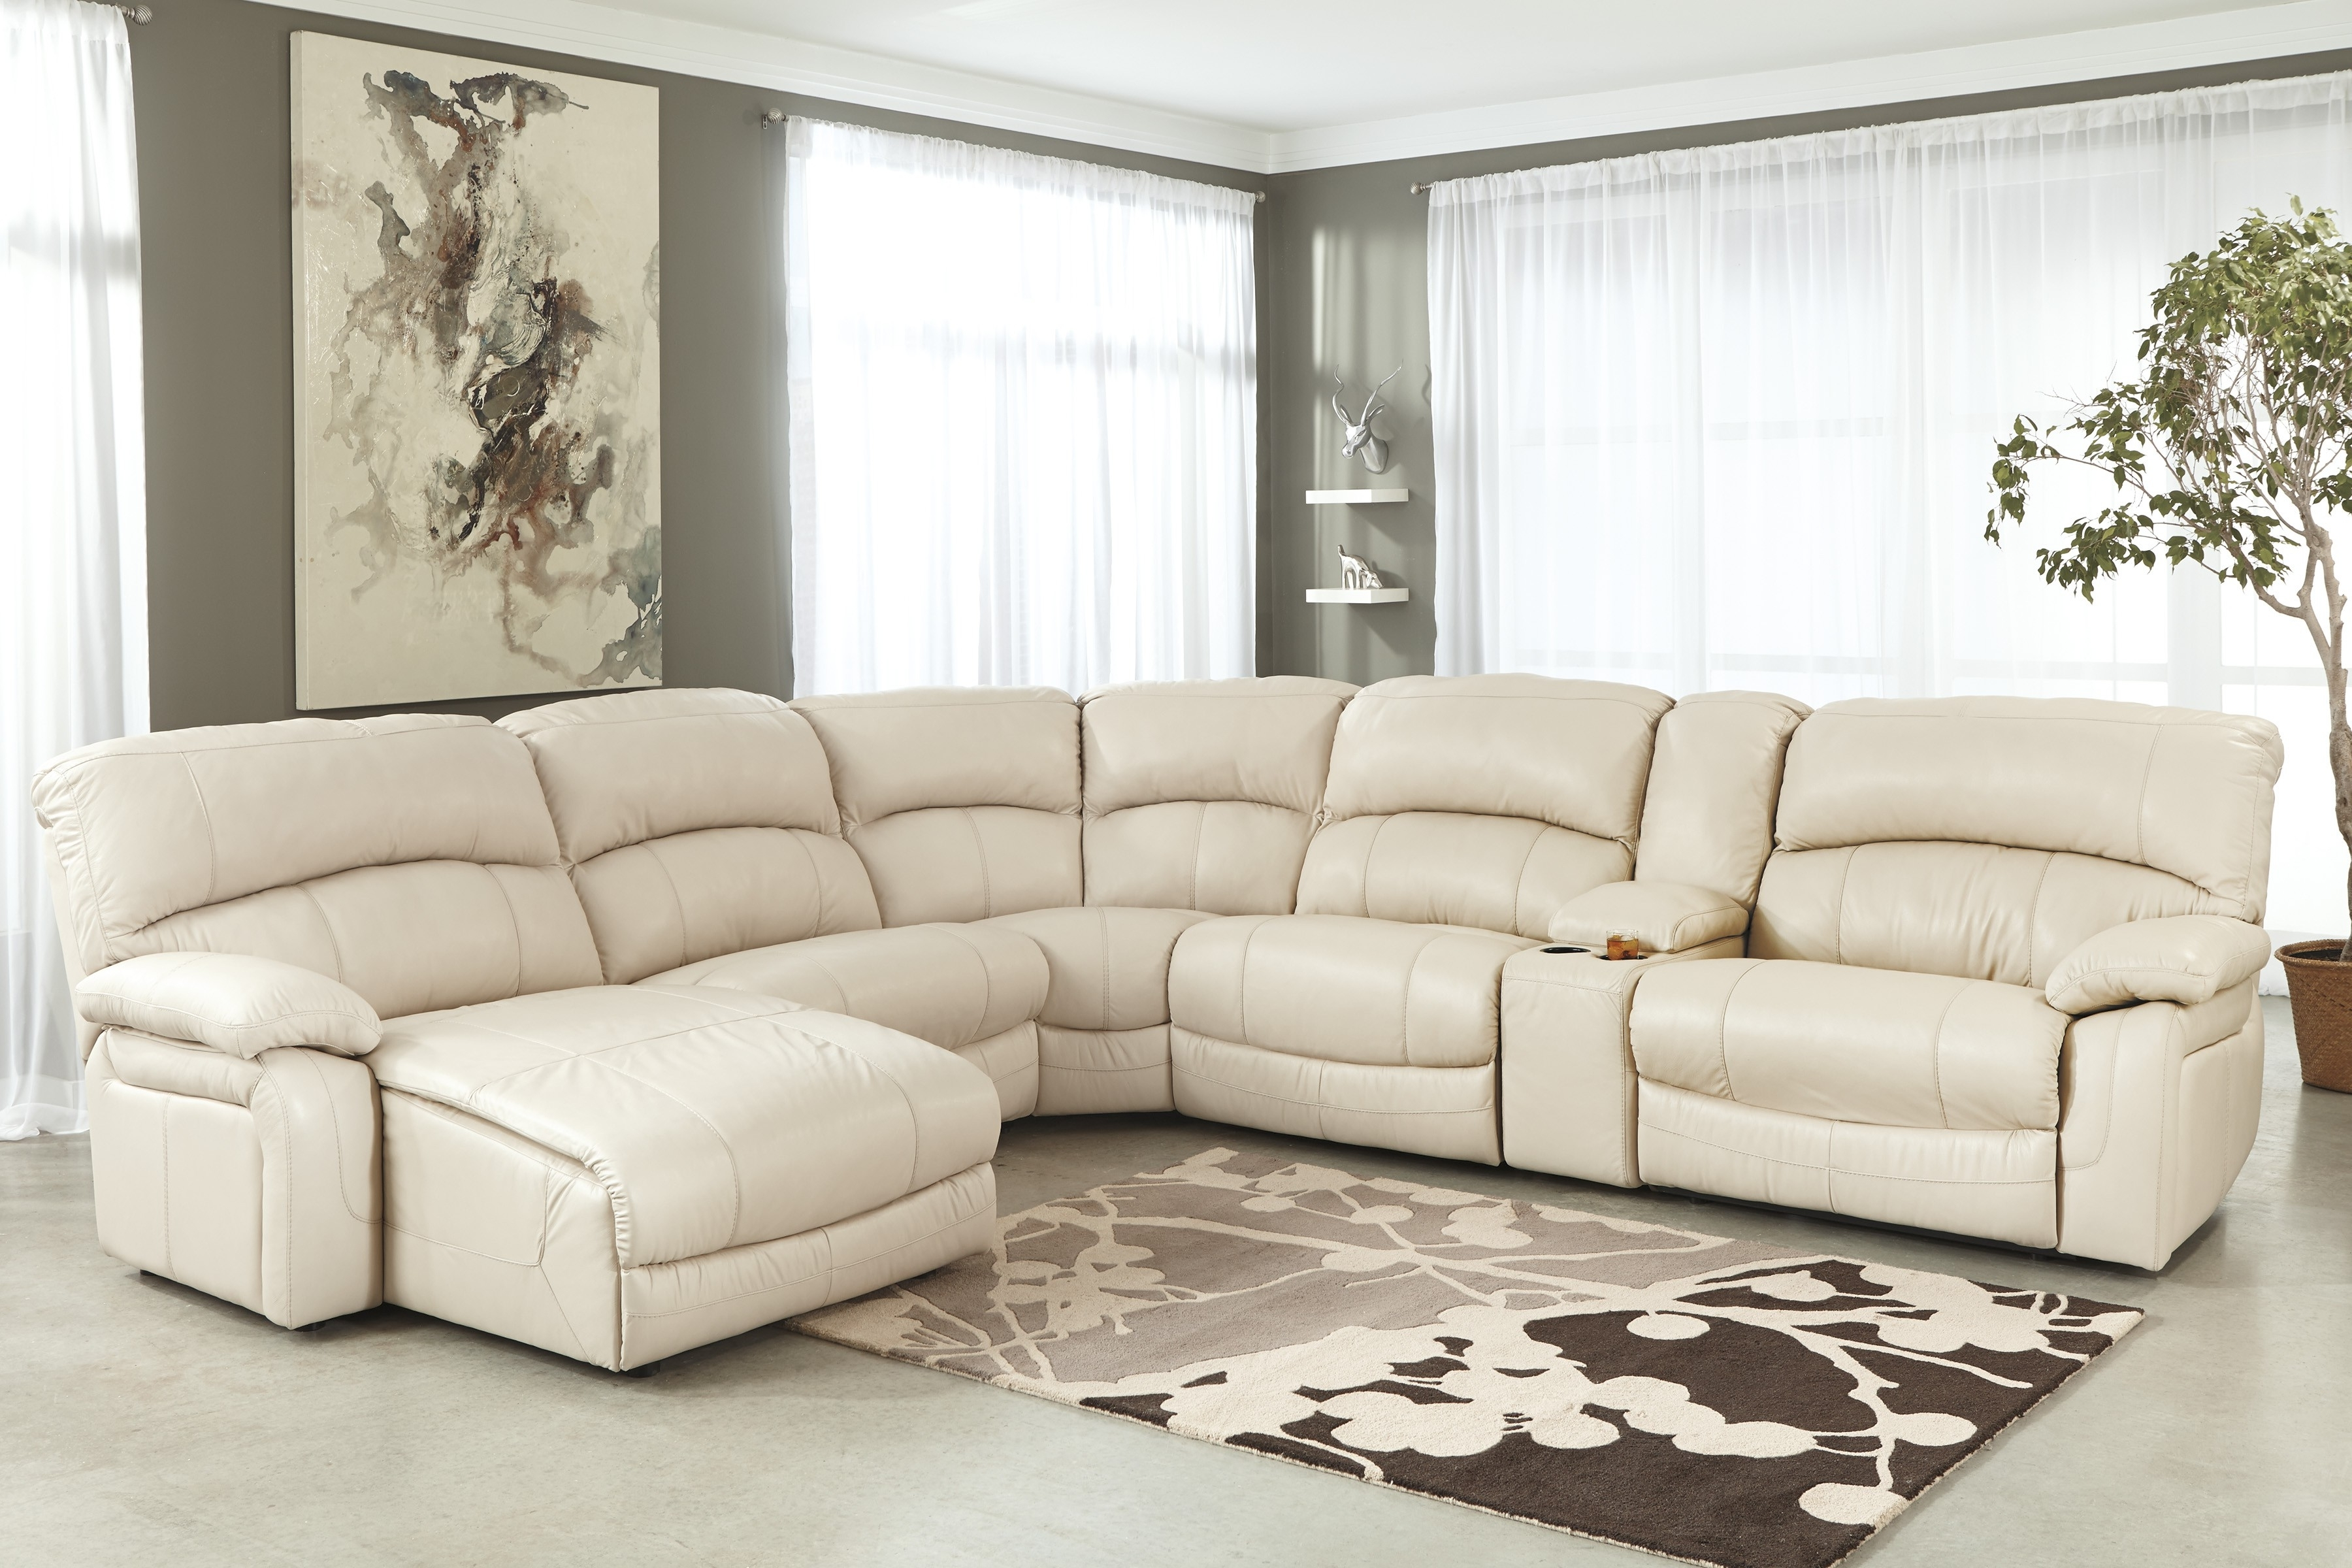 Well Known Sectional Sofa Design: Most Inspired White Leather Sectional Sofa Inside Cream Chaise Sofas (View 15 of 15)